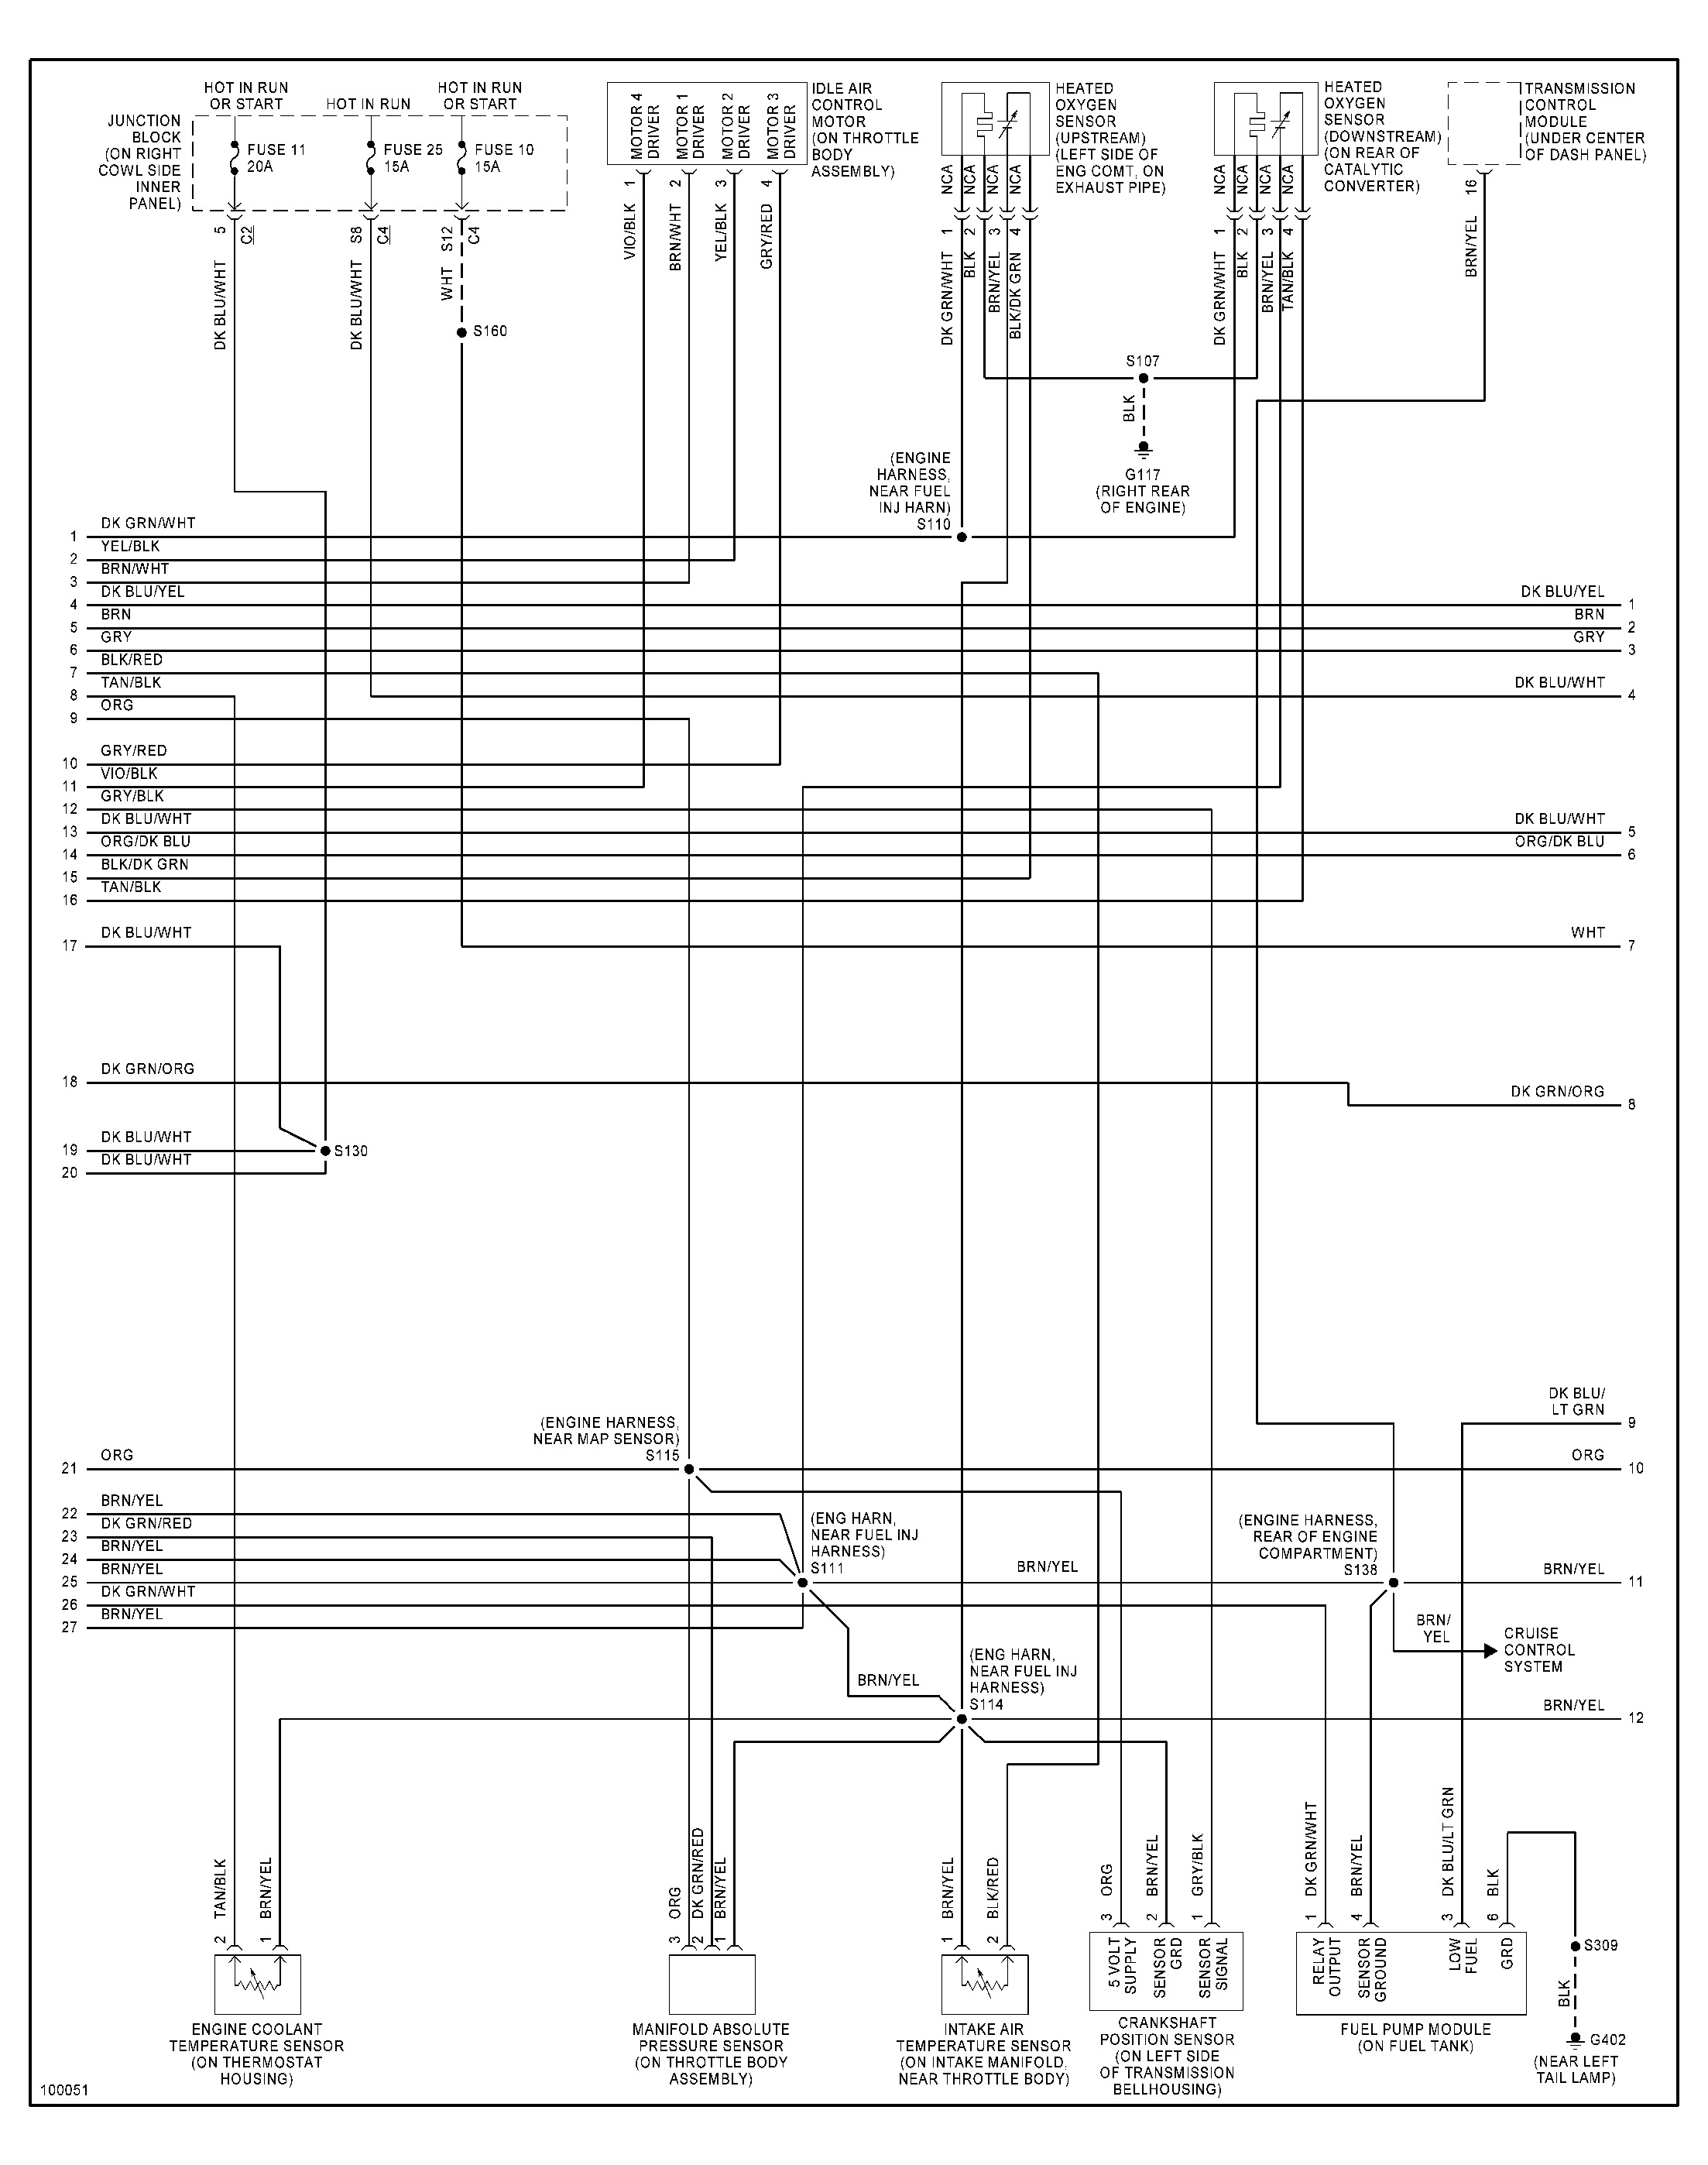 1983 ford econoline fuse diagram html